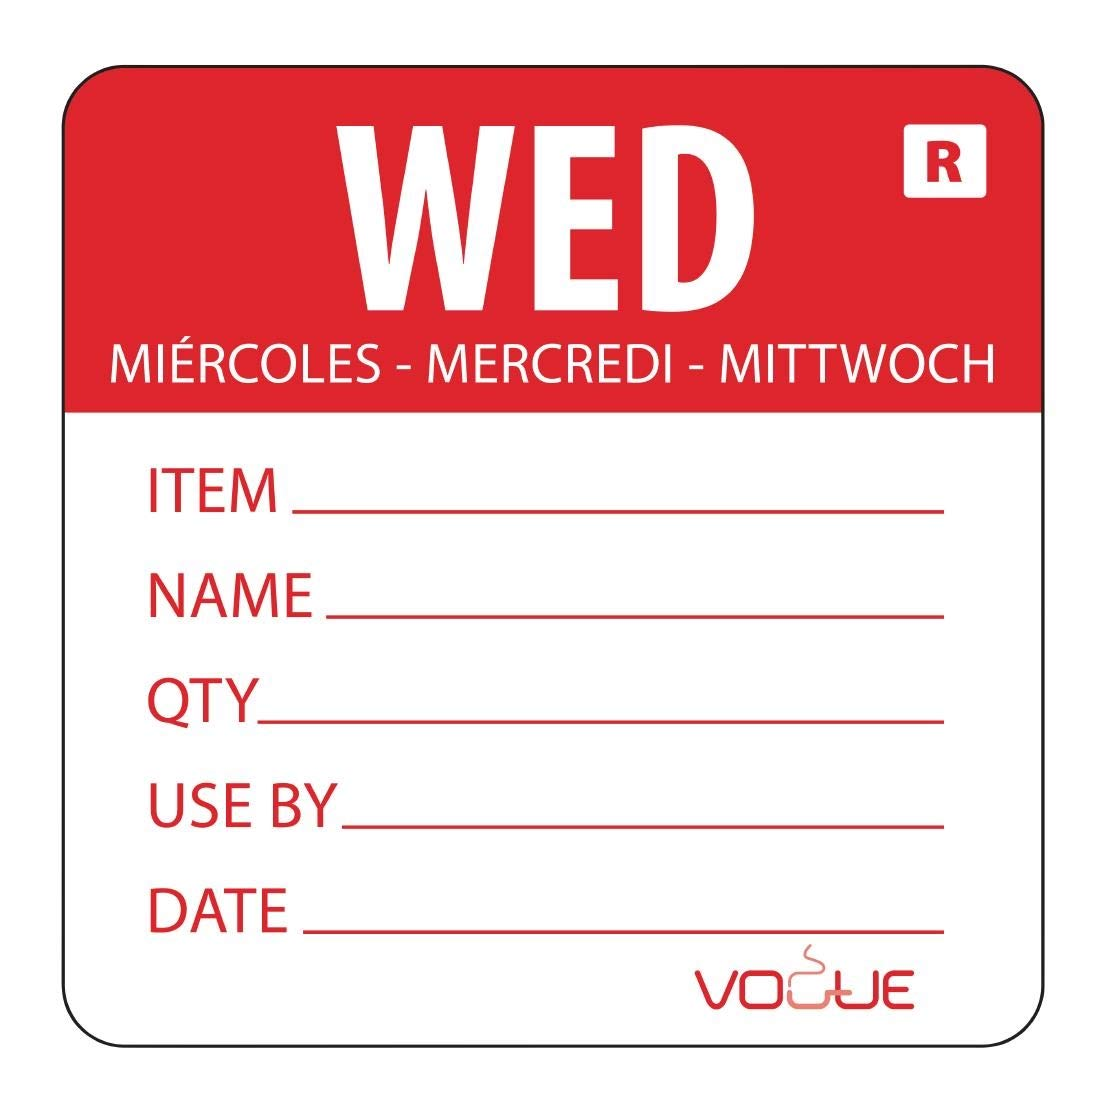 Day Of The Week Labels Removable Wednesday Wednesday - Red